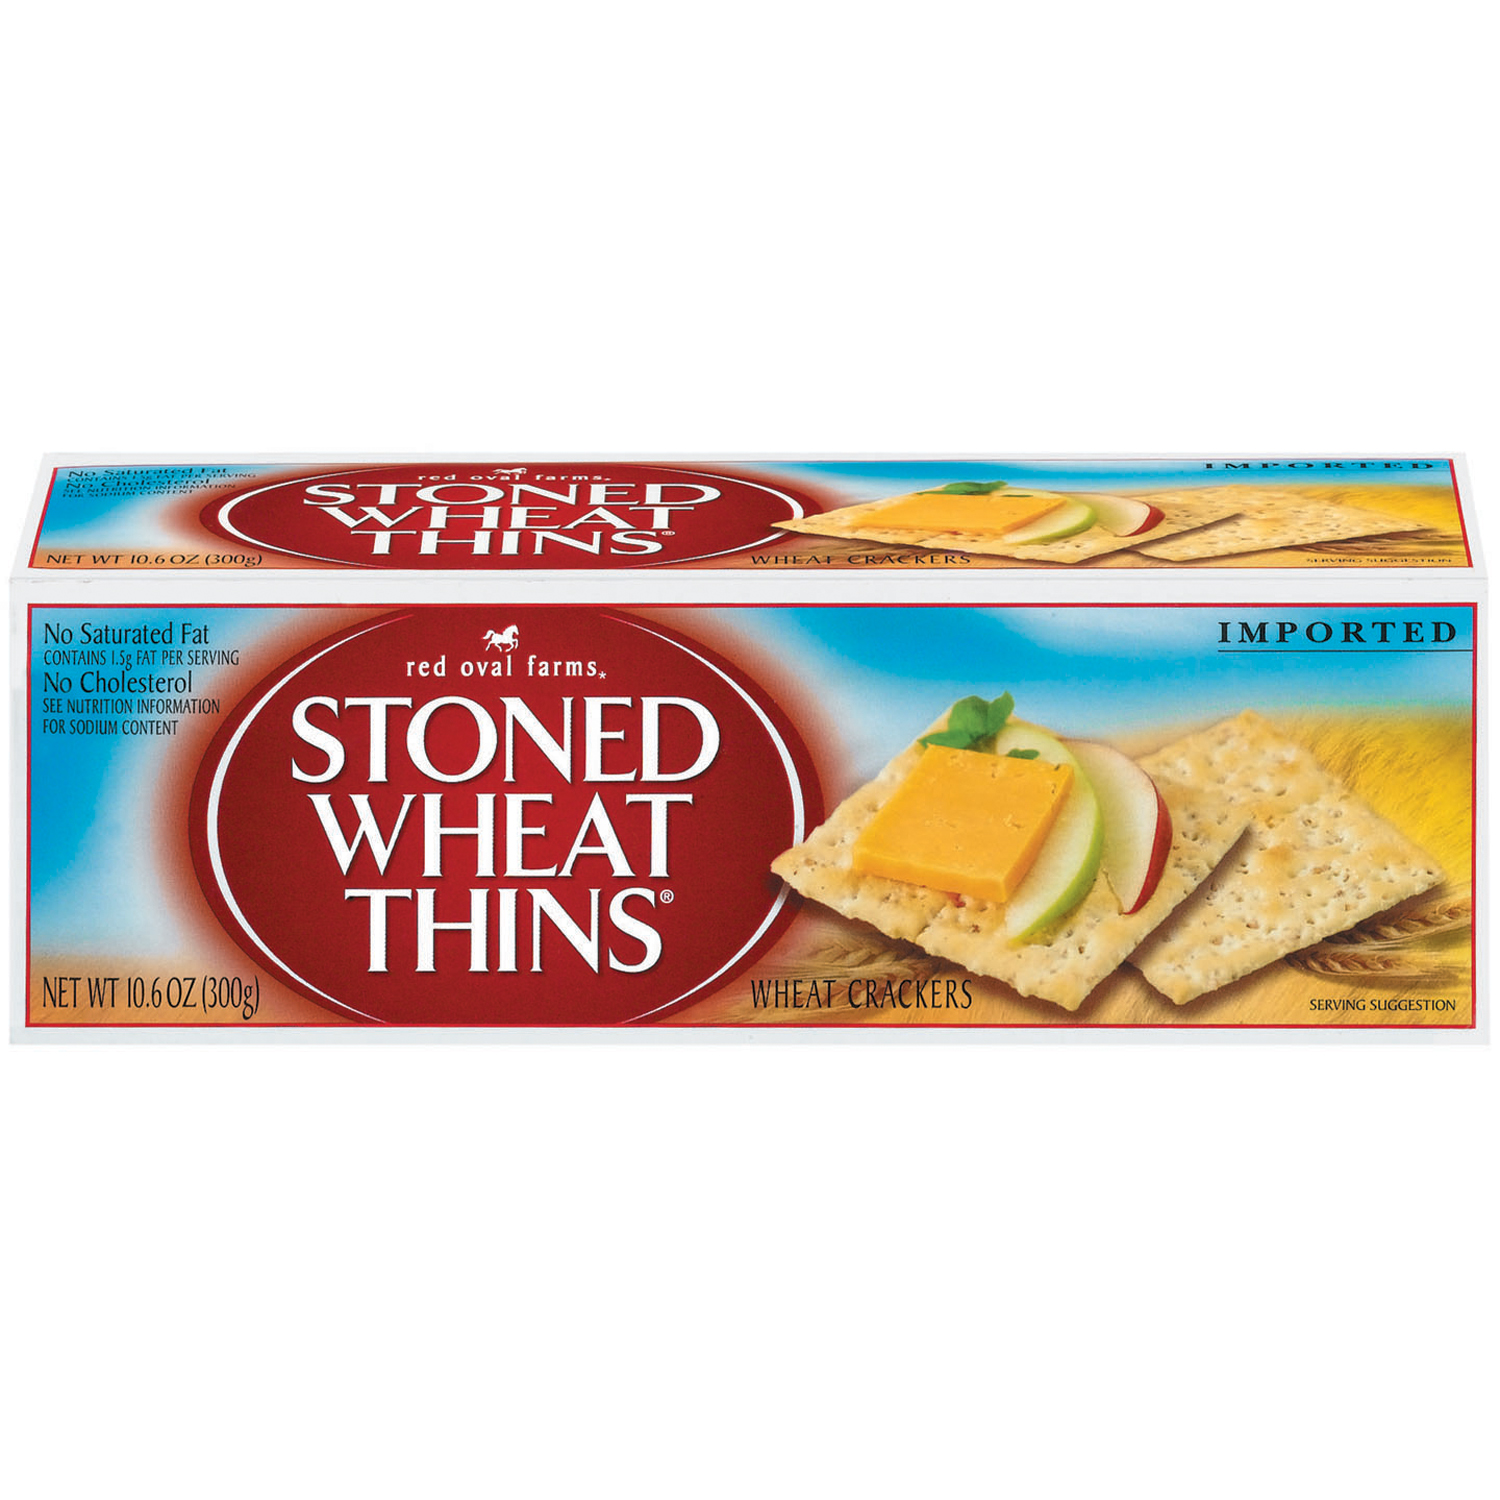 RED OVAL FARMS Stoned Wheat Thins Low Sodium Crackers 10.6 oz